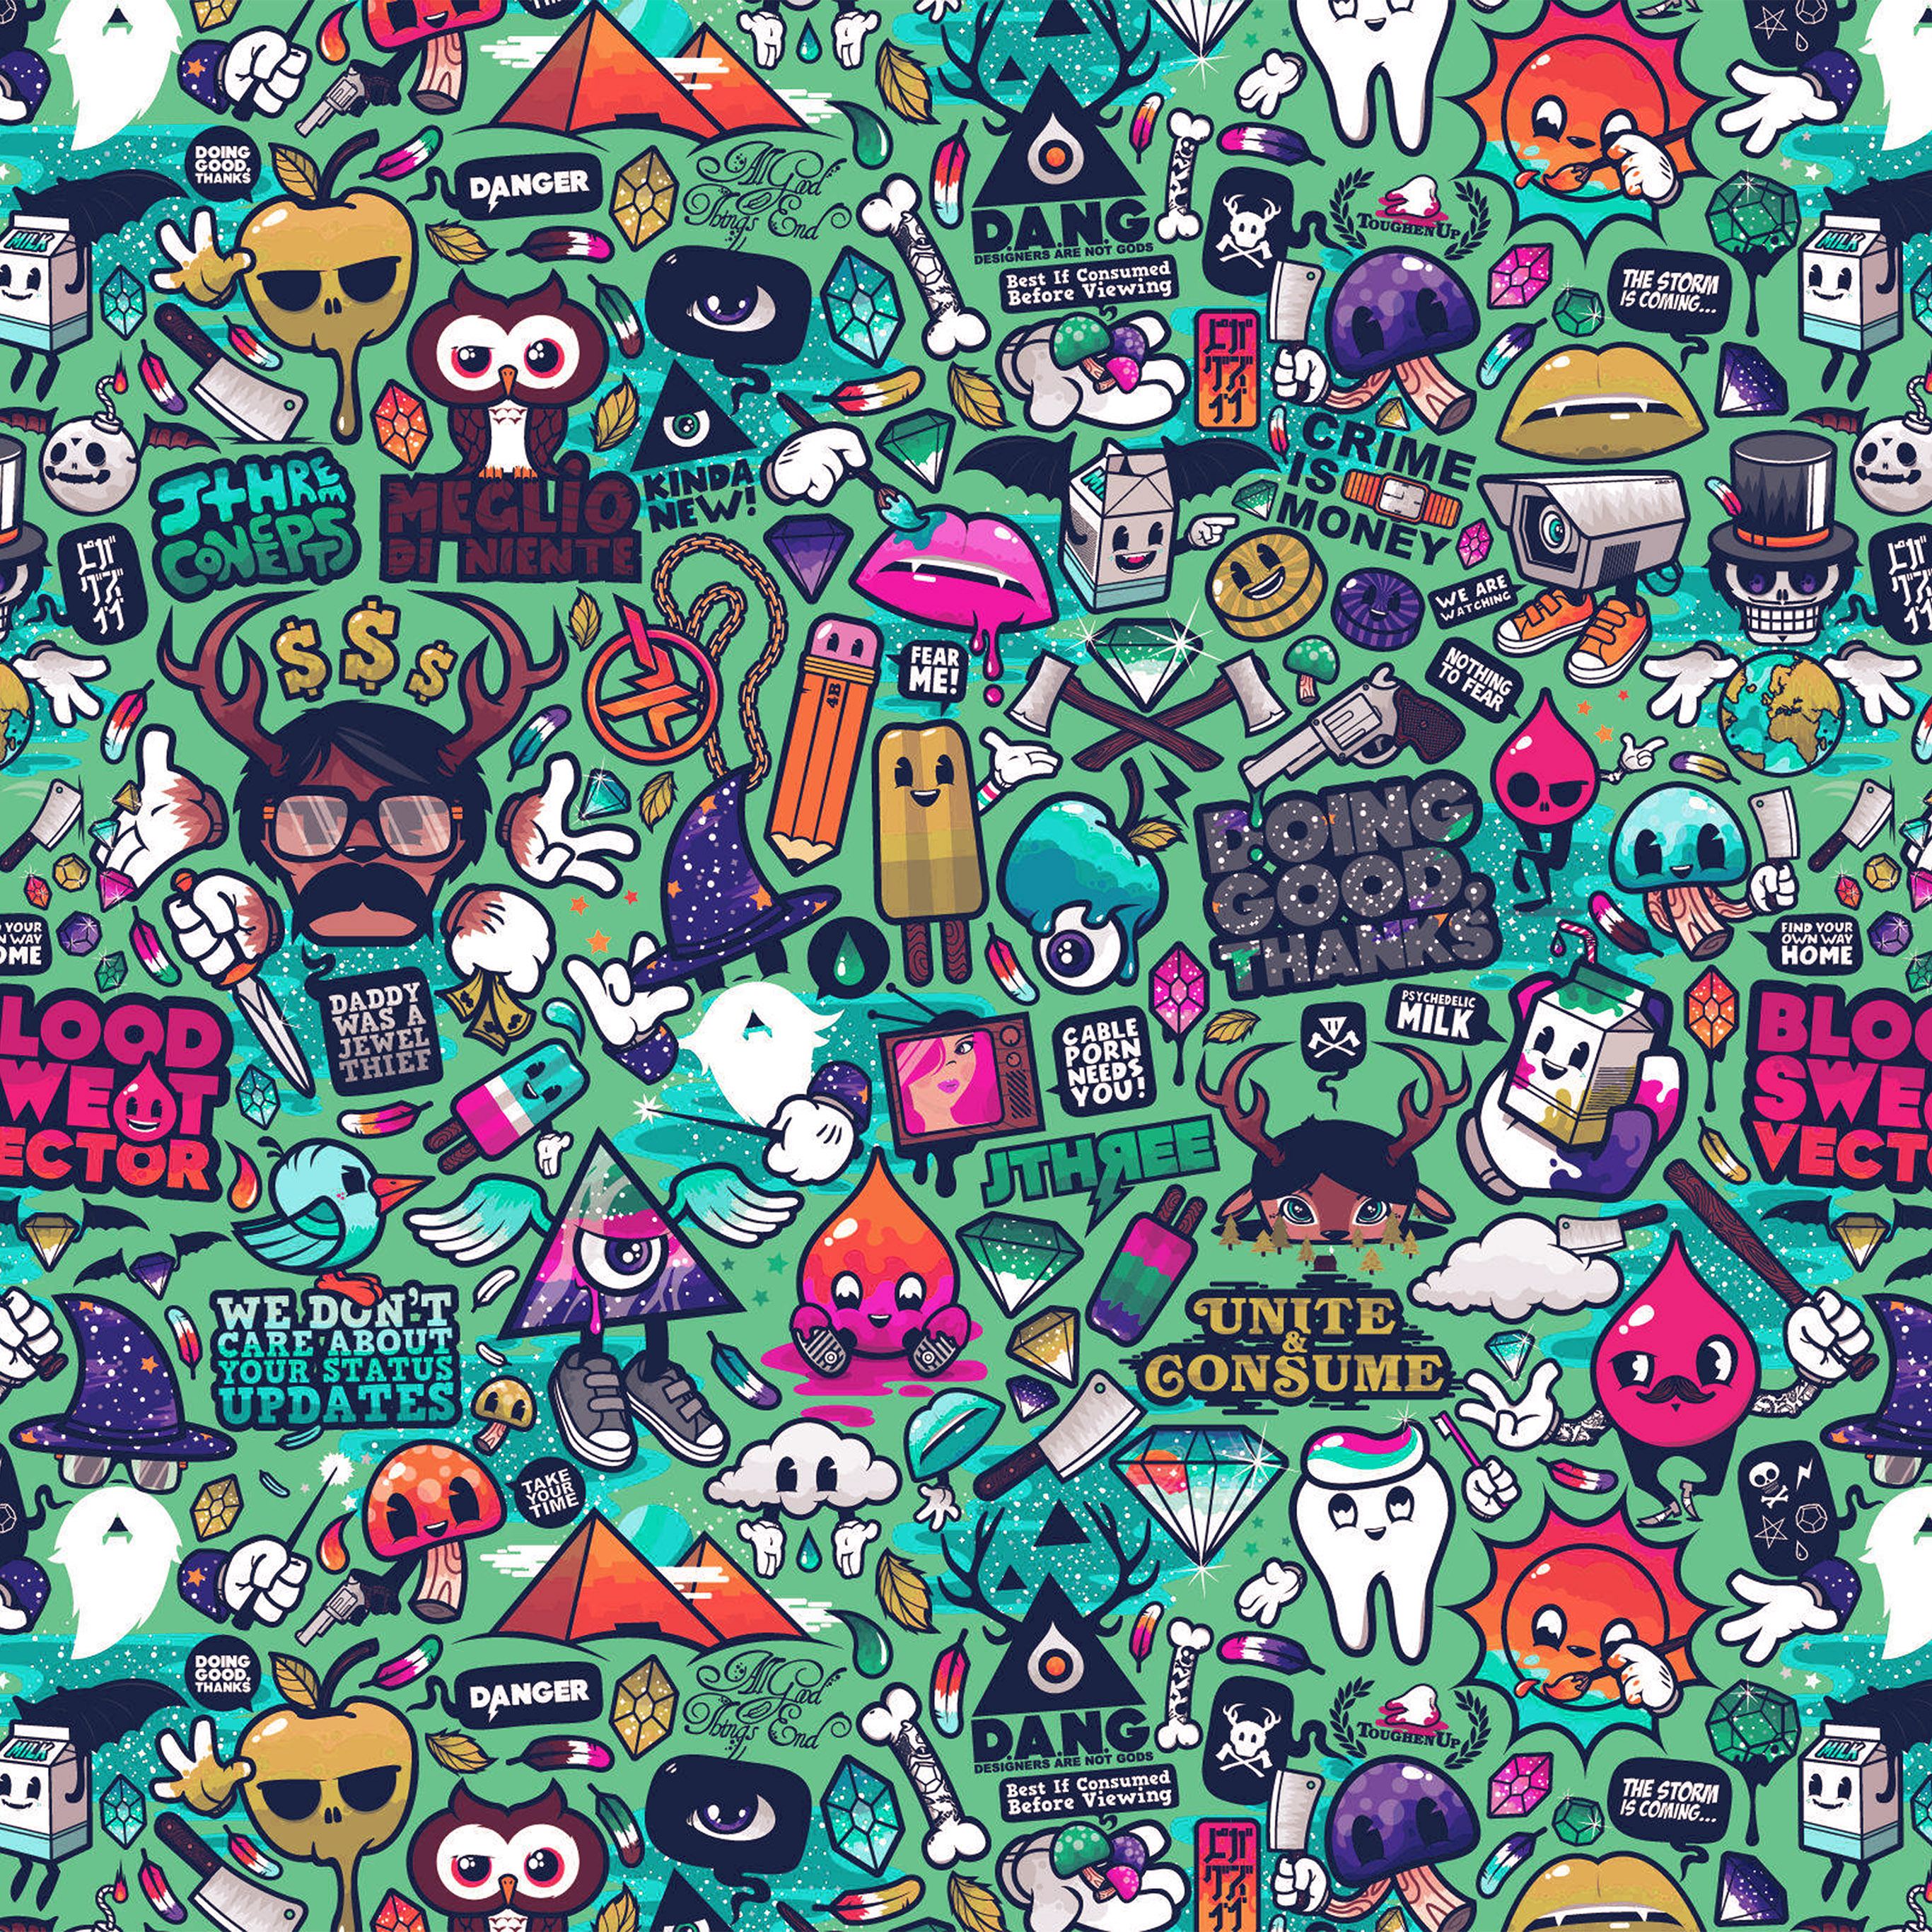 Aq62 Art Work Pattern Illustration Graffiti Green Wallpaper